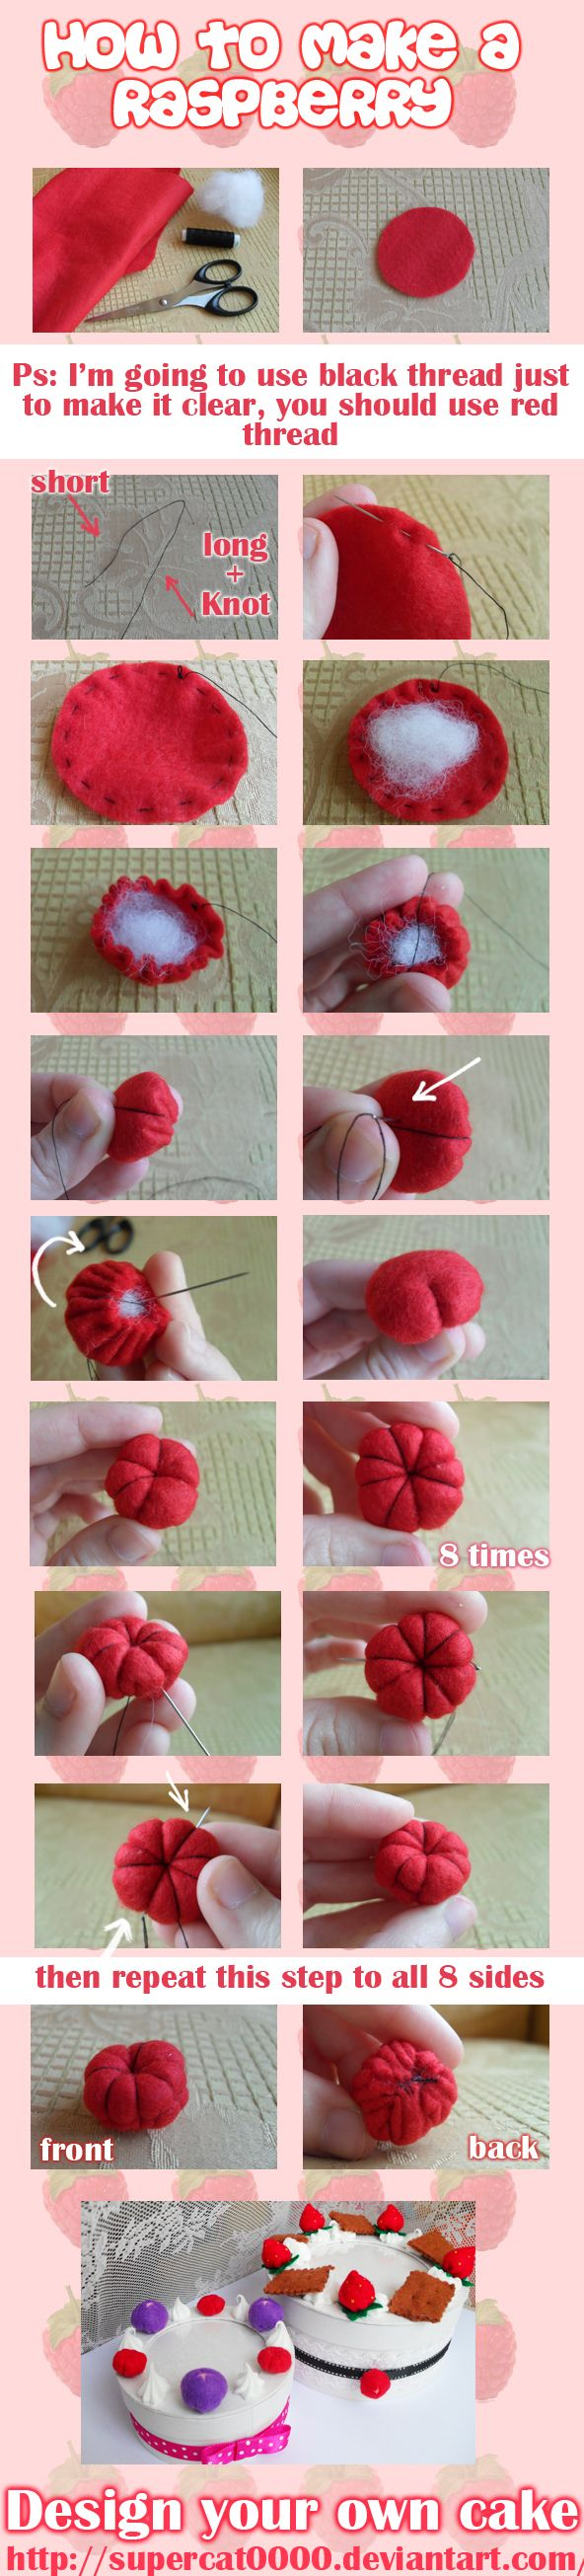 How to make a raspberry by SuperCat0000 on deviantART